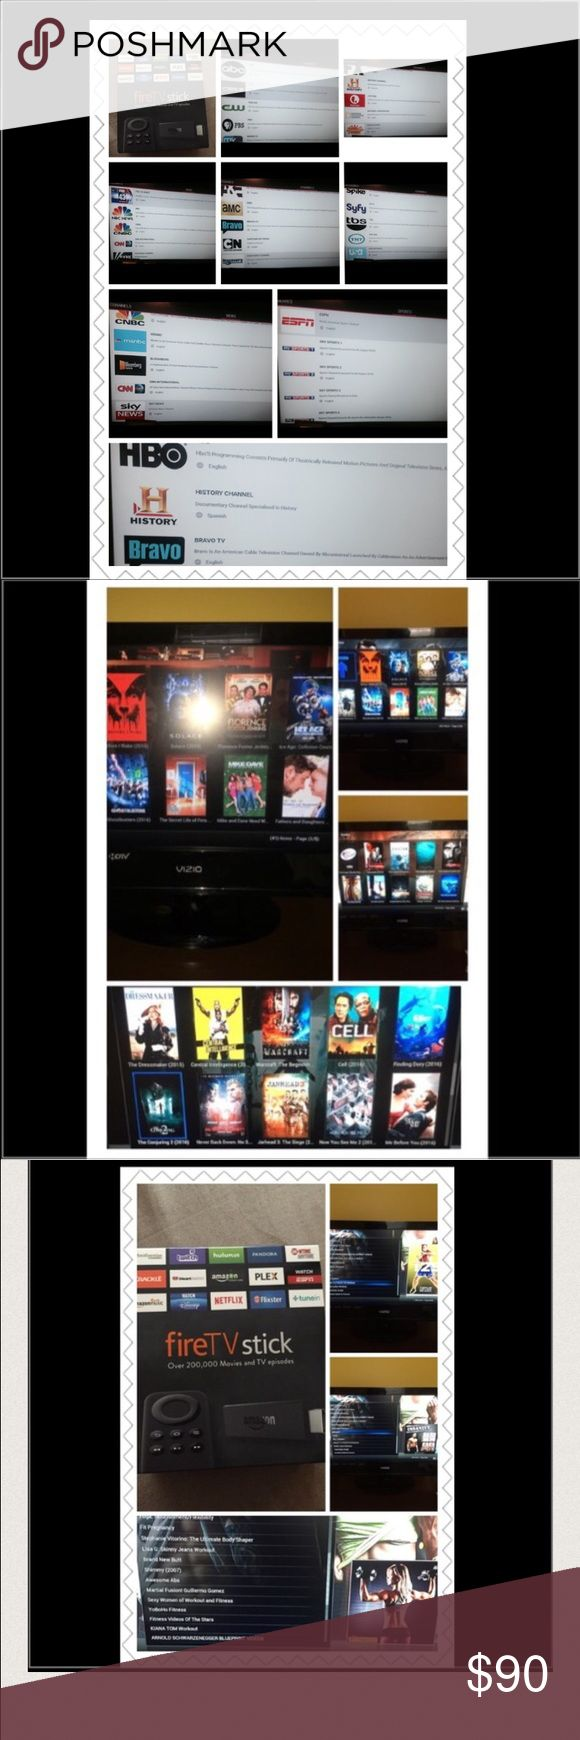 Amazon Fire stick unlocked with KODI Jarvis 16.1 HDMI port on your TV and WIFI are required.  16.1 Jarvis Automatically Updates. Stream LIVE TV with NO MONTHLY BILL & Pay Per View Movies, Theatre Movies, NBA, NFL, NHL Games, UFC fights, Boxing, WWE, Soccer Games, Nascar racing, Tennis, Baseball, etc. 200+ US Channels; 200+ Spanish Channels; Live Sports; Live News; Live International TV; On-Demand Movies/TV Shows; Adult Content; Workout Videos; Pay Per View Events; Music; and Games. Adult…